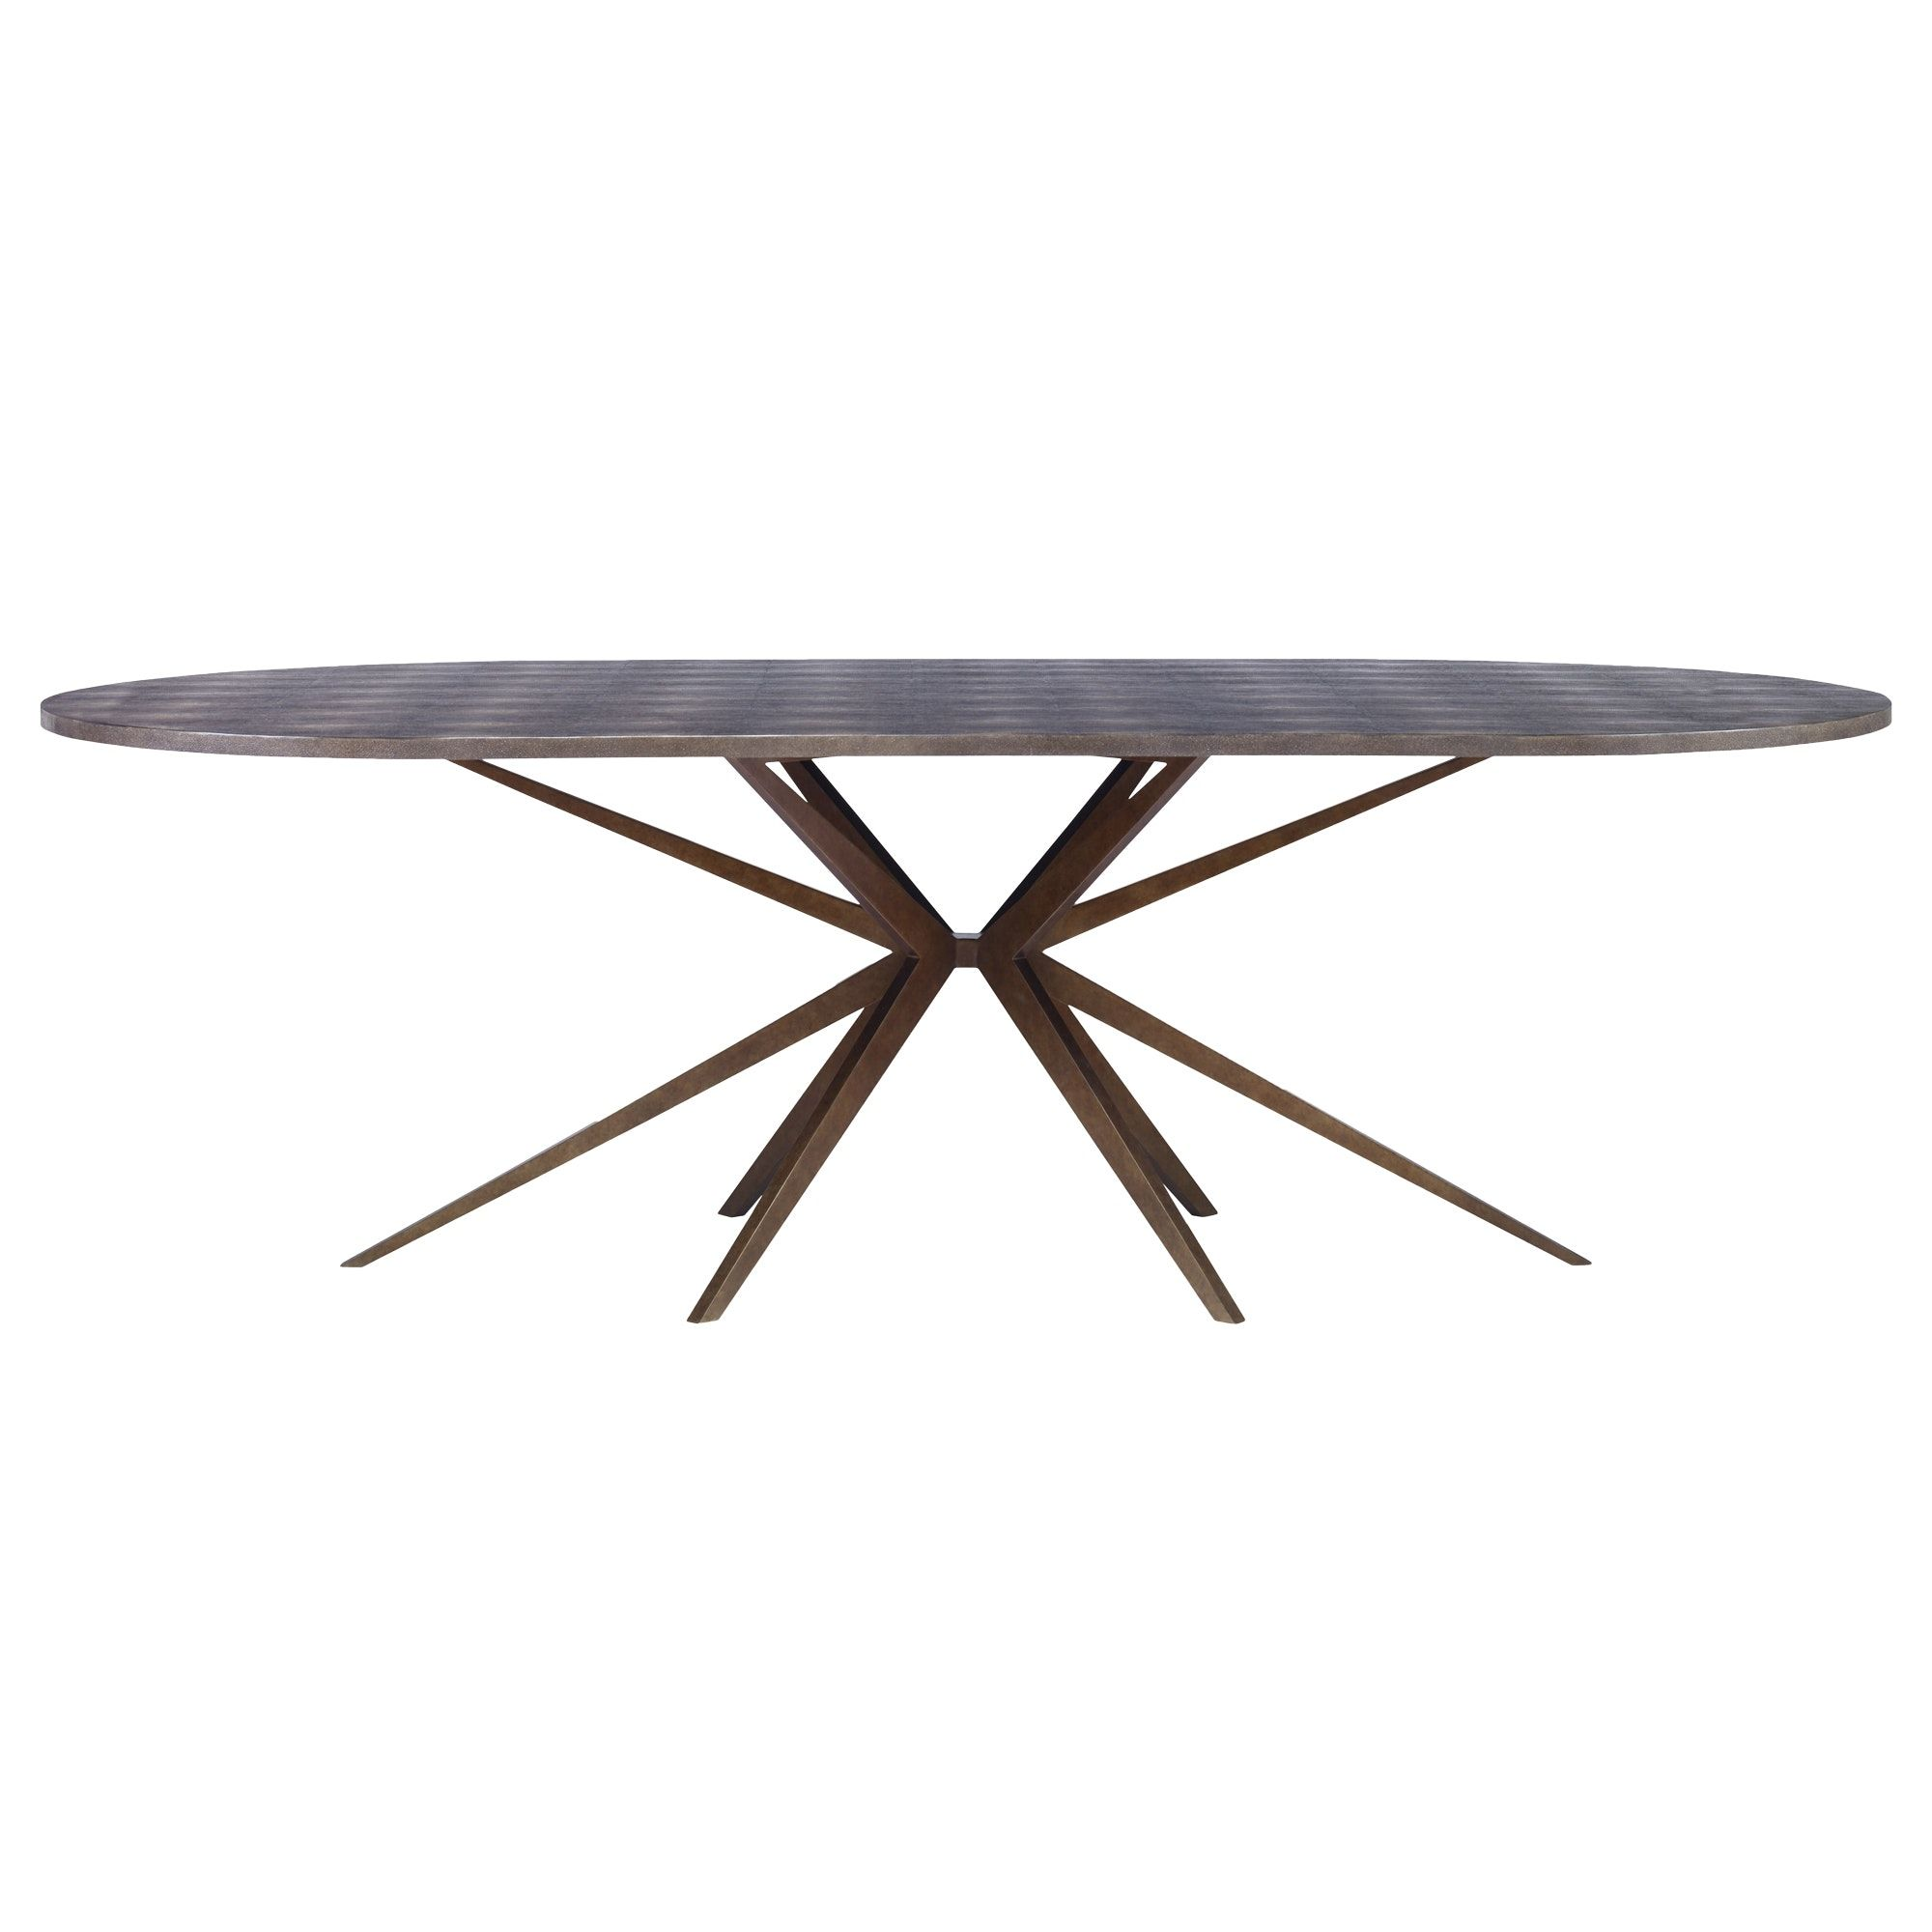 Buy Atlantis Oval Dining Table By Mr Brown London Made To Order